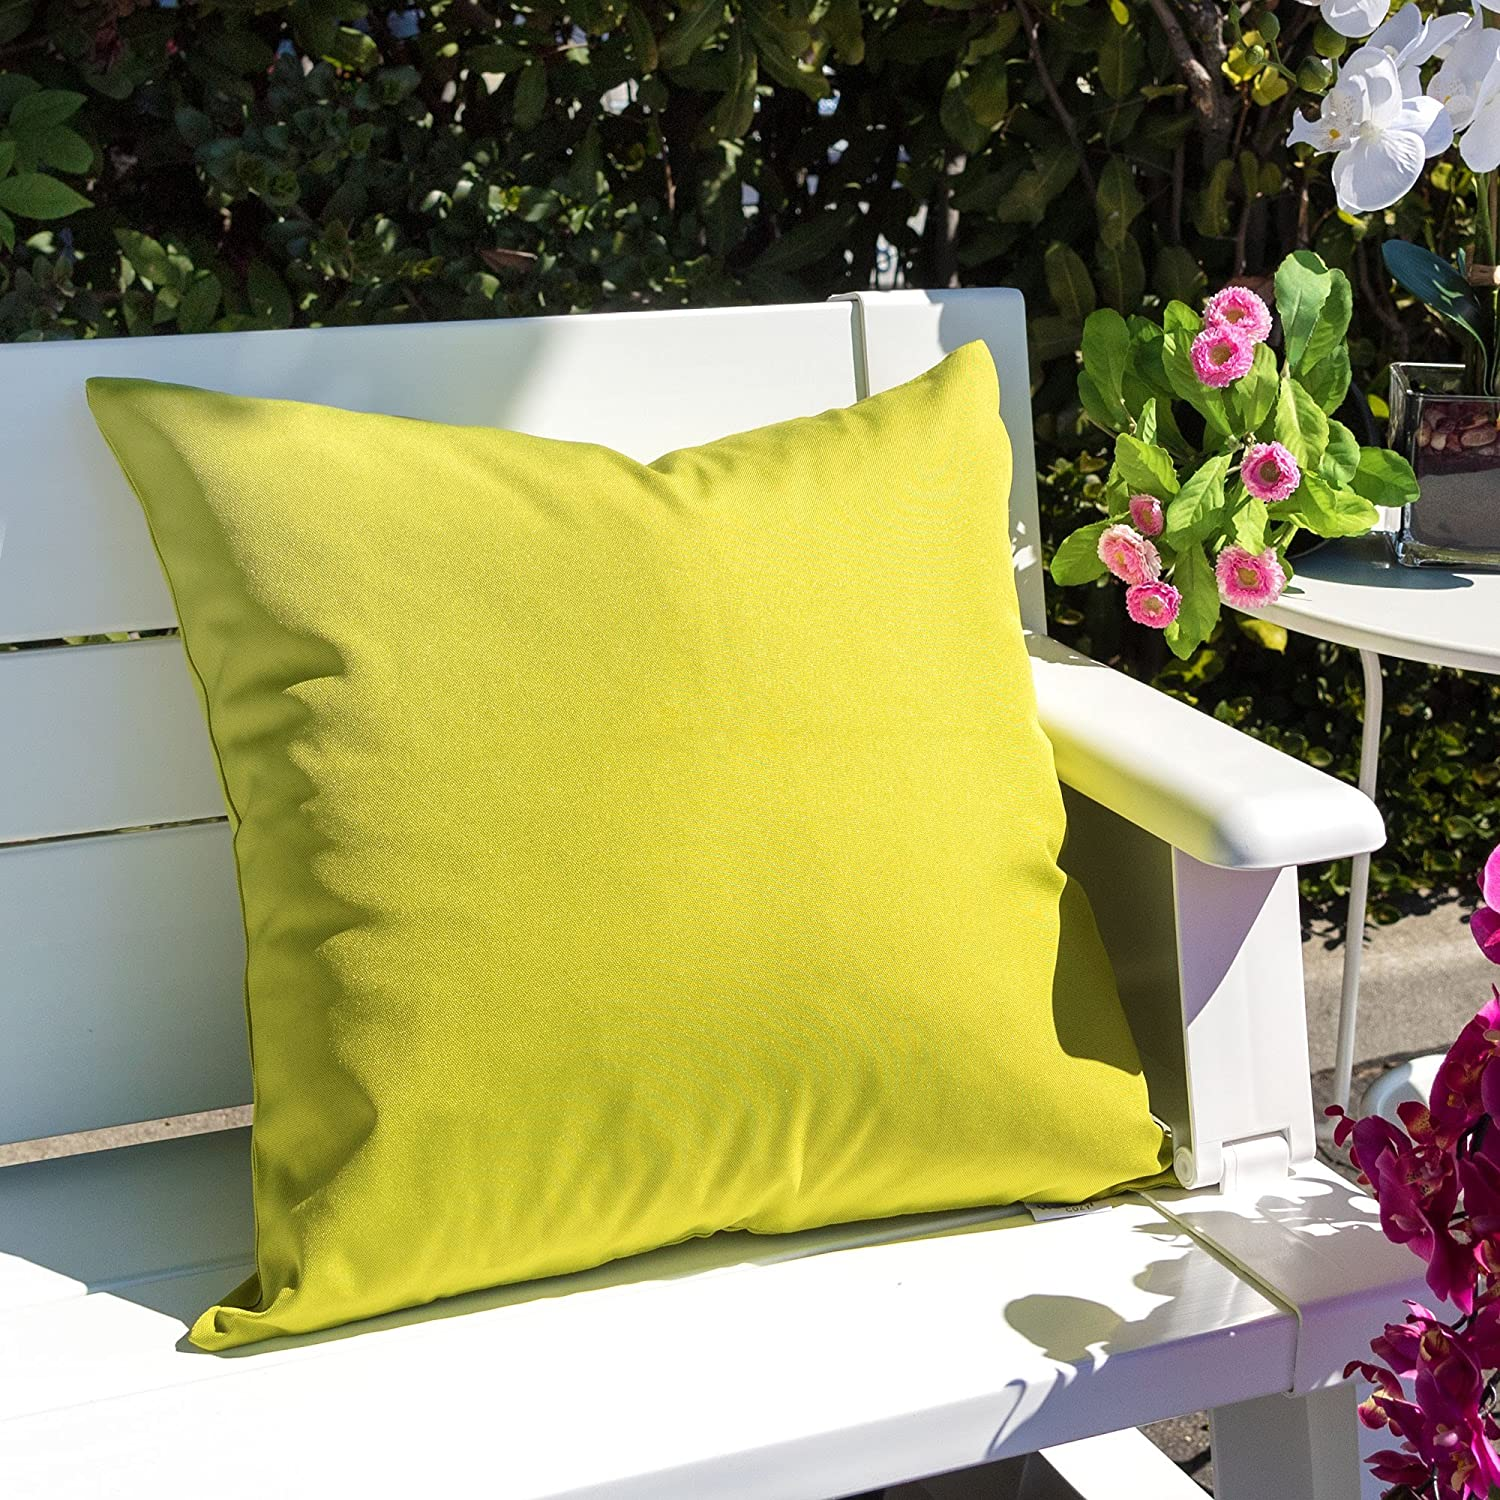 Homey Cozy Outdoor Throw Pillow Cover Cover Only Classic Solid Aqua Blue Large Pillow Sham Water//UV Fade//Stain-Resistance for Patio Lawn Couch Sofa Lounge 20x20